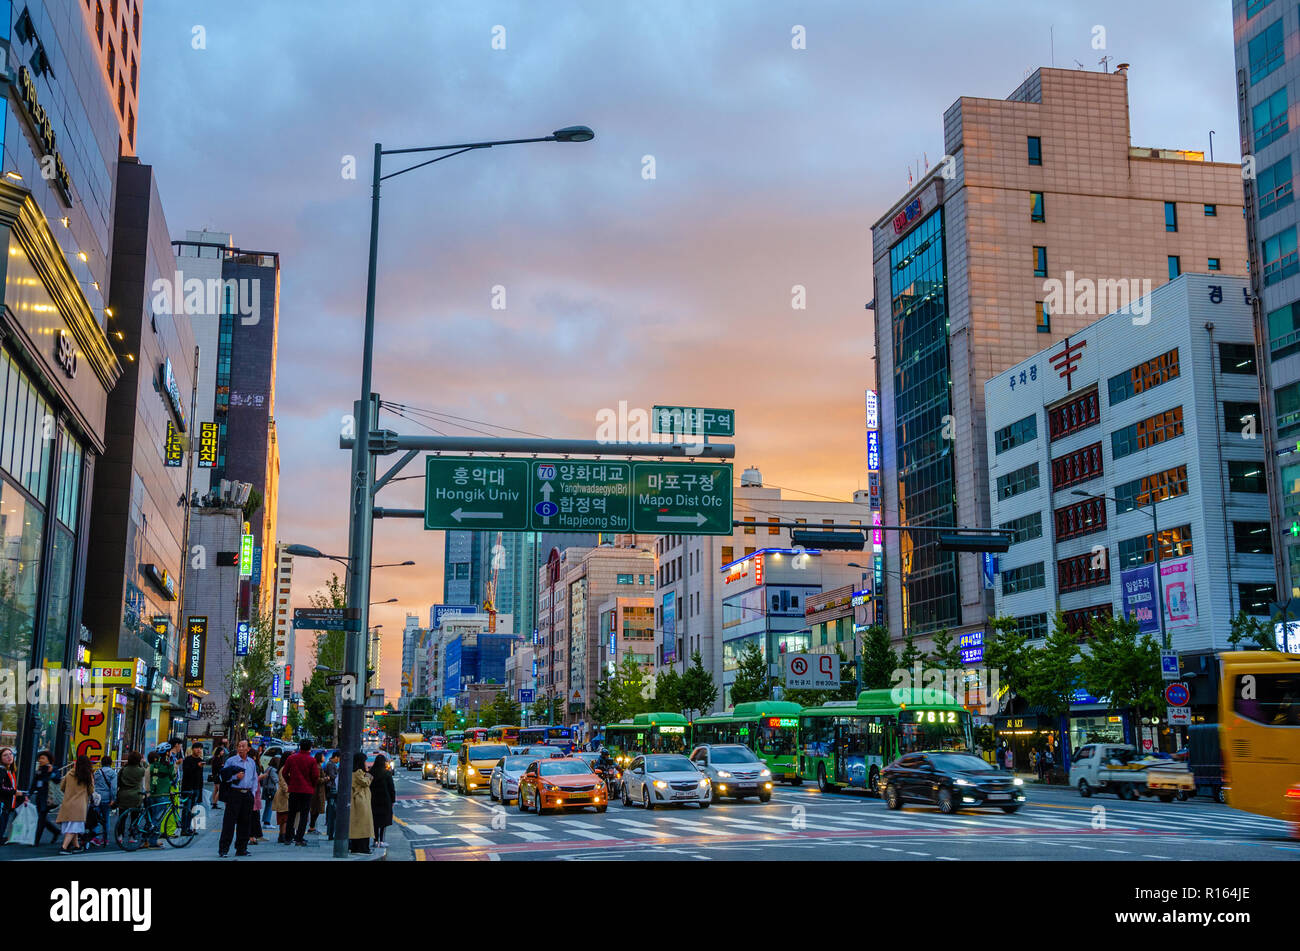 a-busy-street-scene-in-the-seogyo-dong-area-of-seoul-south-korea-at-sunset-R164JE.jpg